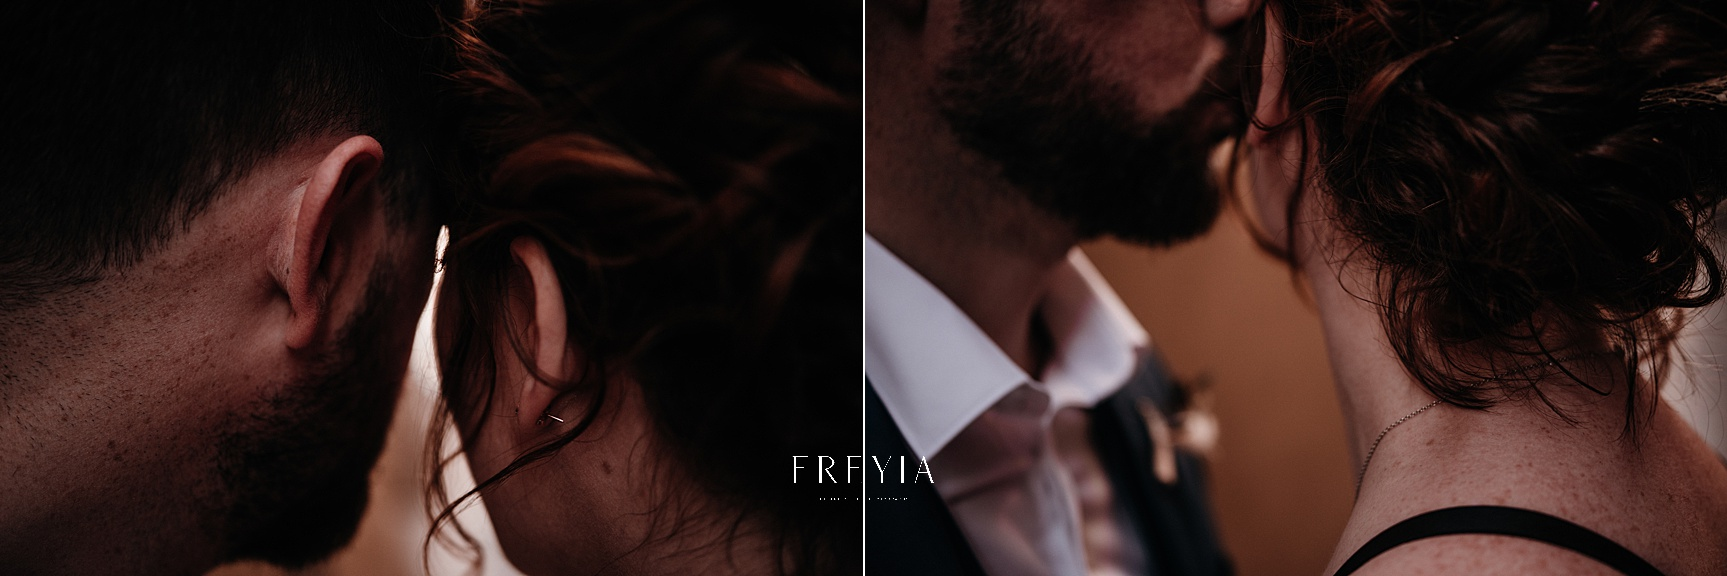 P + F |  mariage reportage alternatif moody intime vintage naturel boho boheme |  PHOTOGRAPHE mariage PARIS france destination  | FREYIA photography_-254.jpg